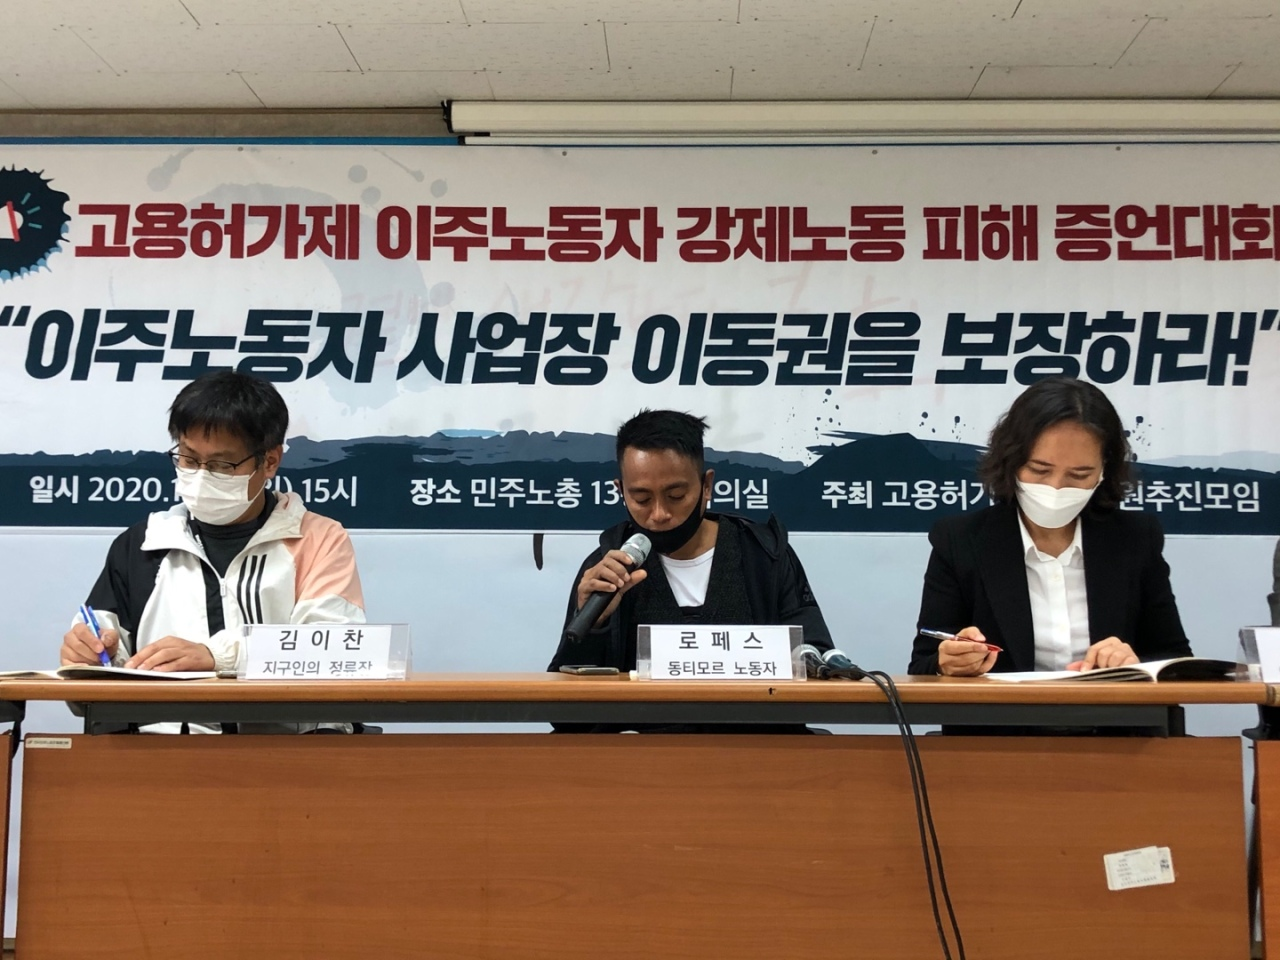 A migrant fisherman from Timor-Leste, who wanted to be identified only as Lopes M., speaks about his experience of working long hours without being paid properly at a press conference in central Seoul, Sunday. (Ock Hyun-ju/The Korea Herald)